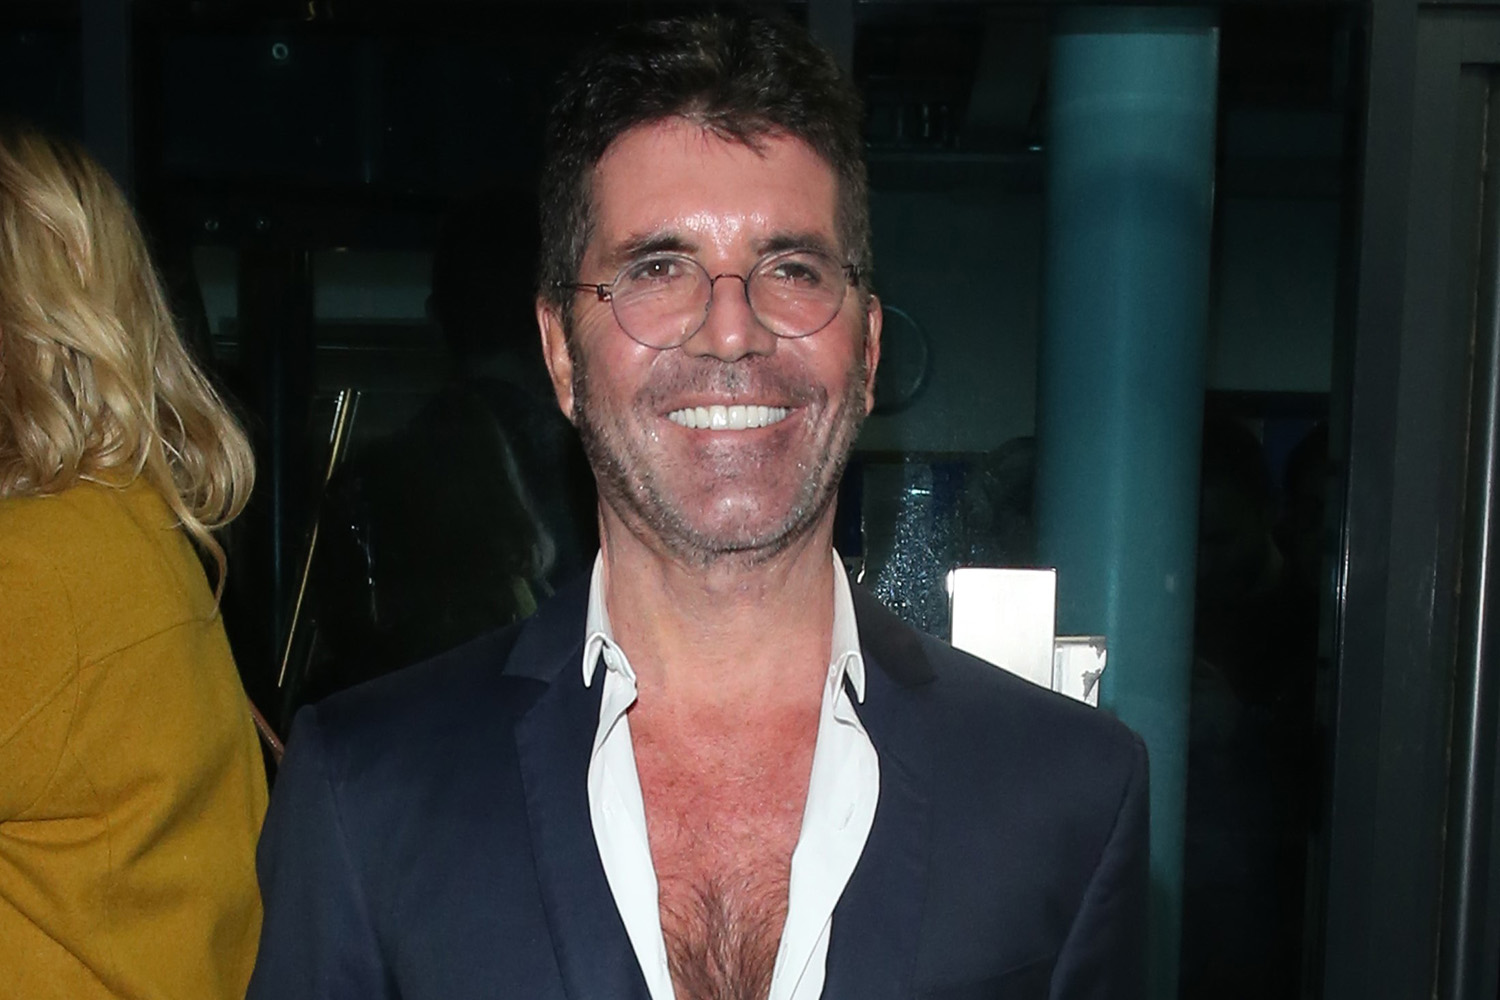 Simon Cowell Speaks Inspiring New AGT Contestant